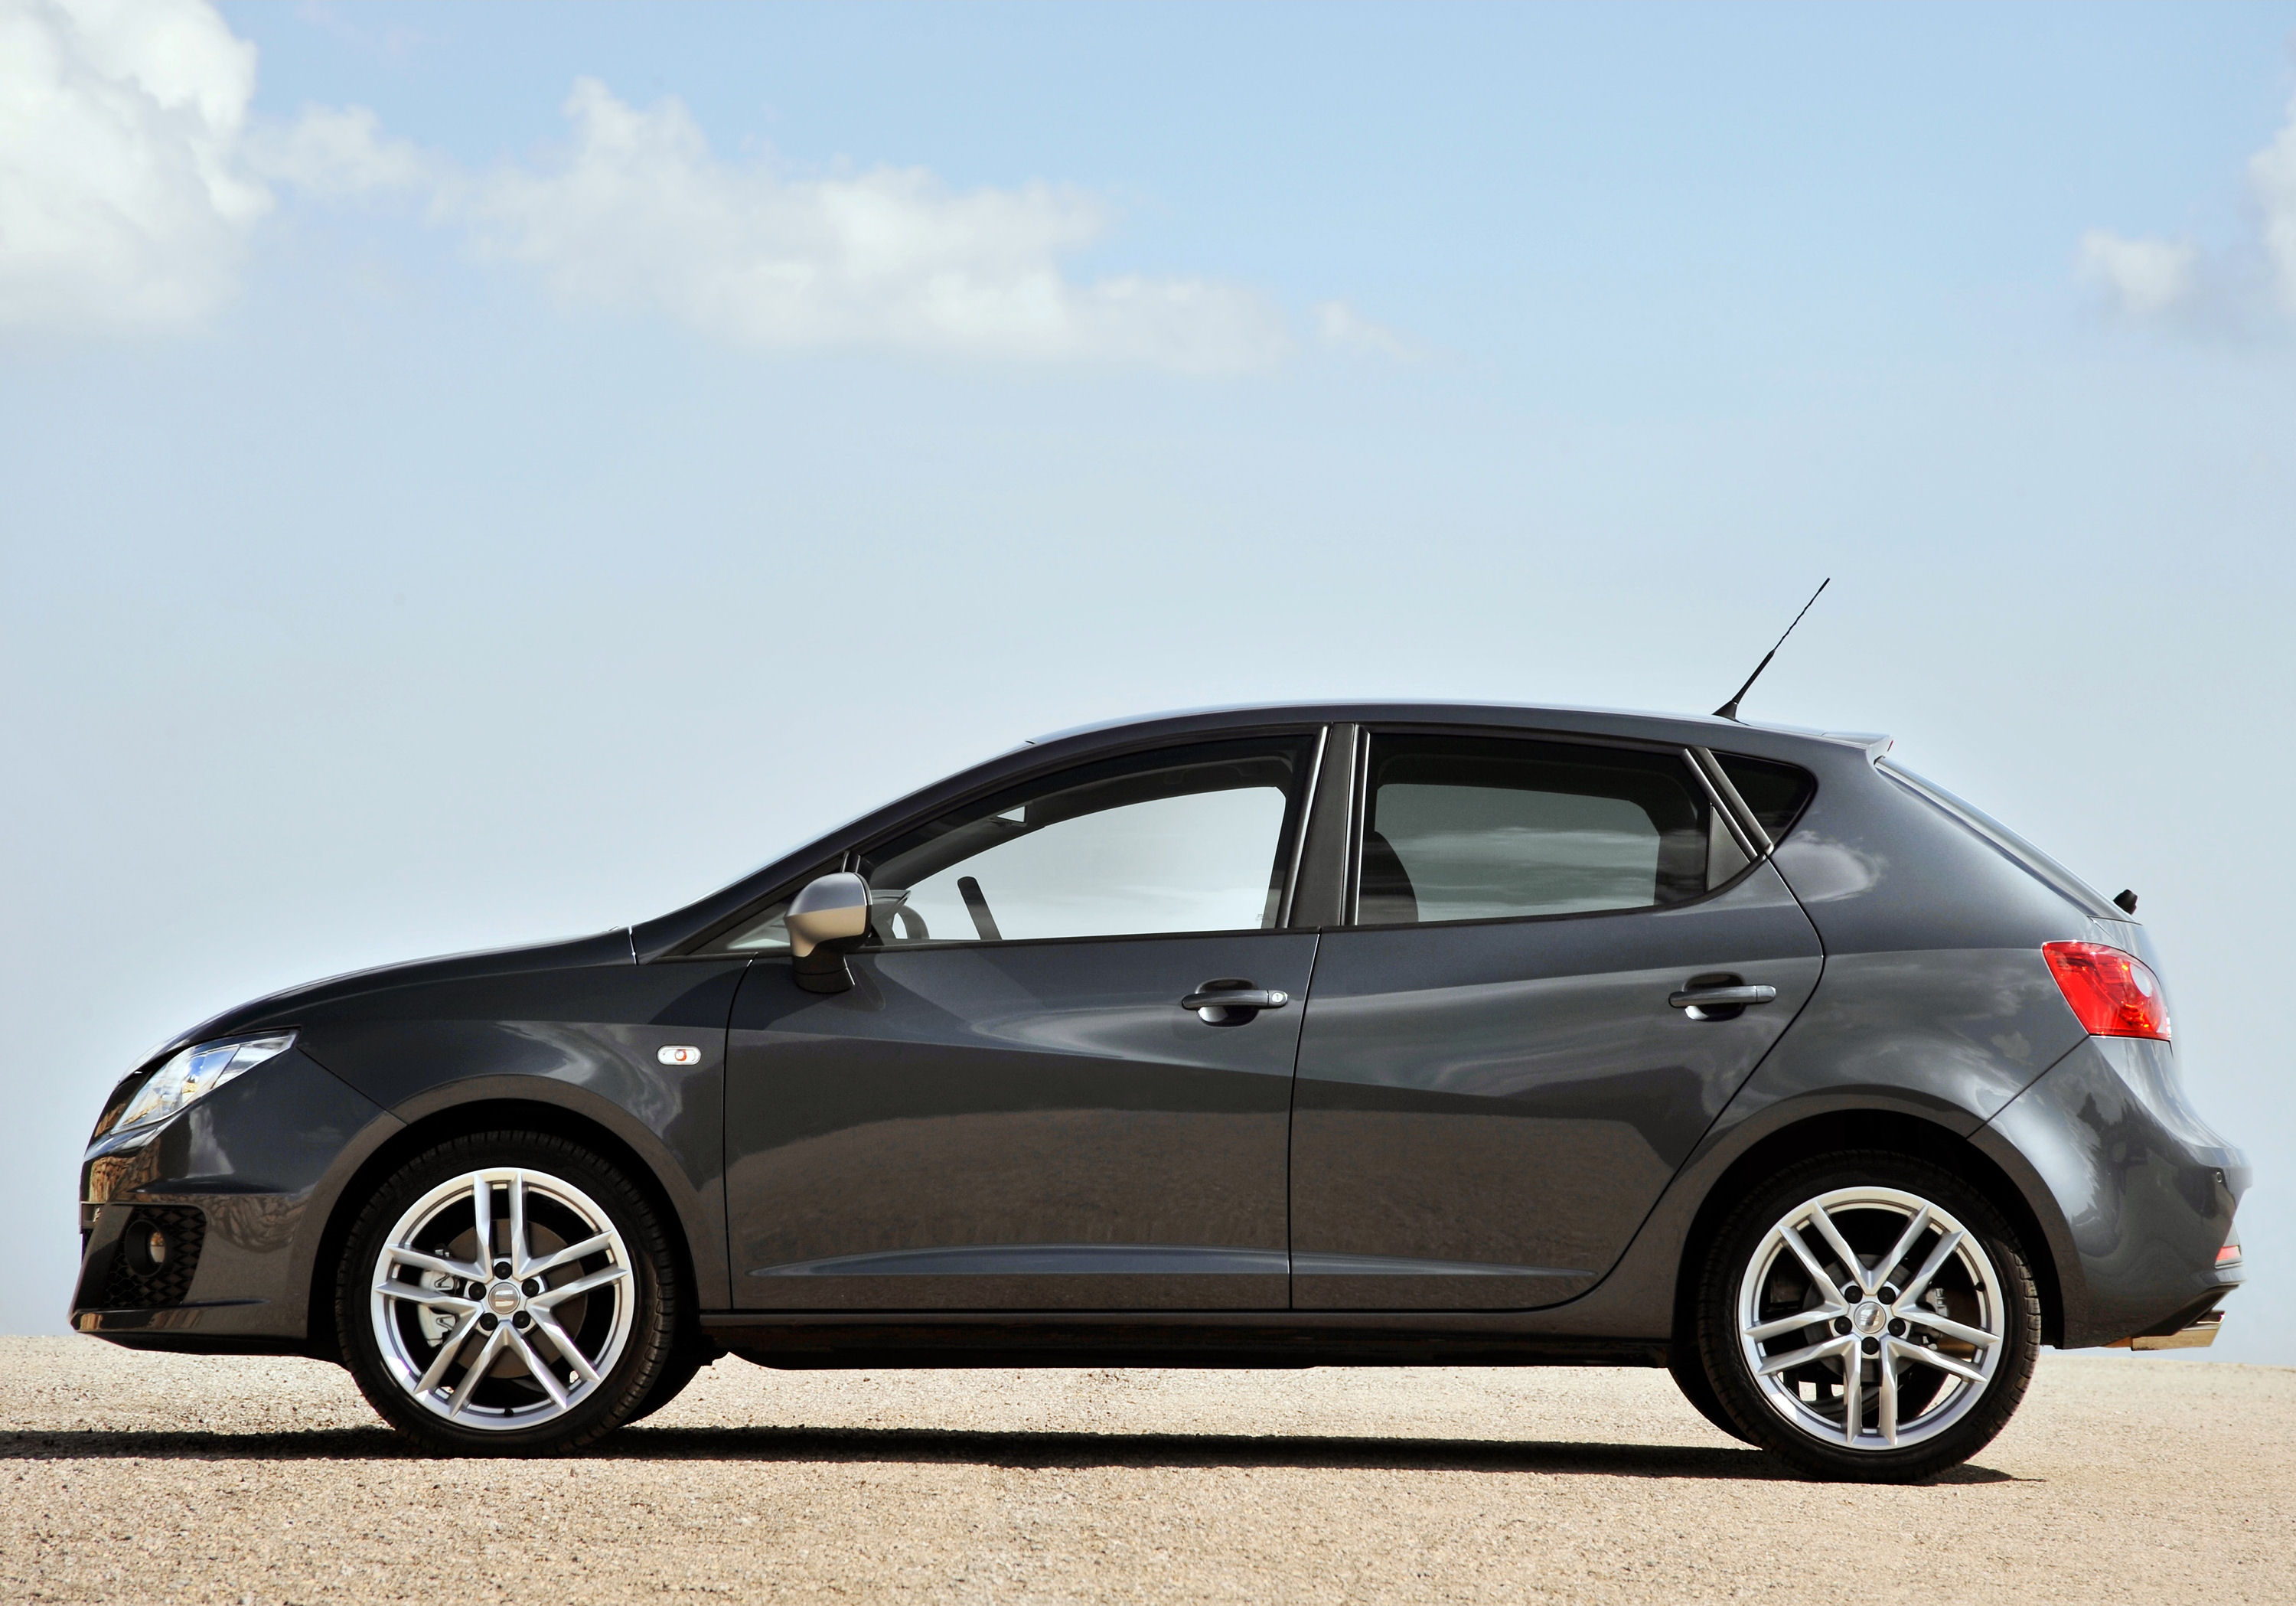 seat ibiza fr 2 0 tdi cr 143ps first drive petroleum vitae. Black Bedroom Furniture Sets. Home Design Ideas